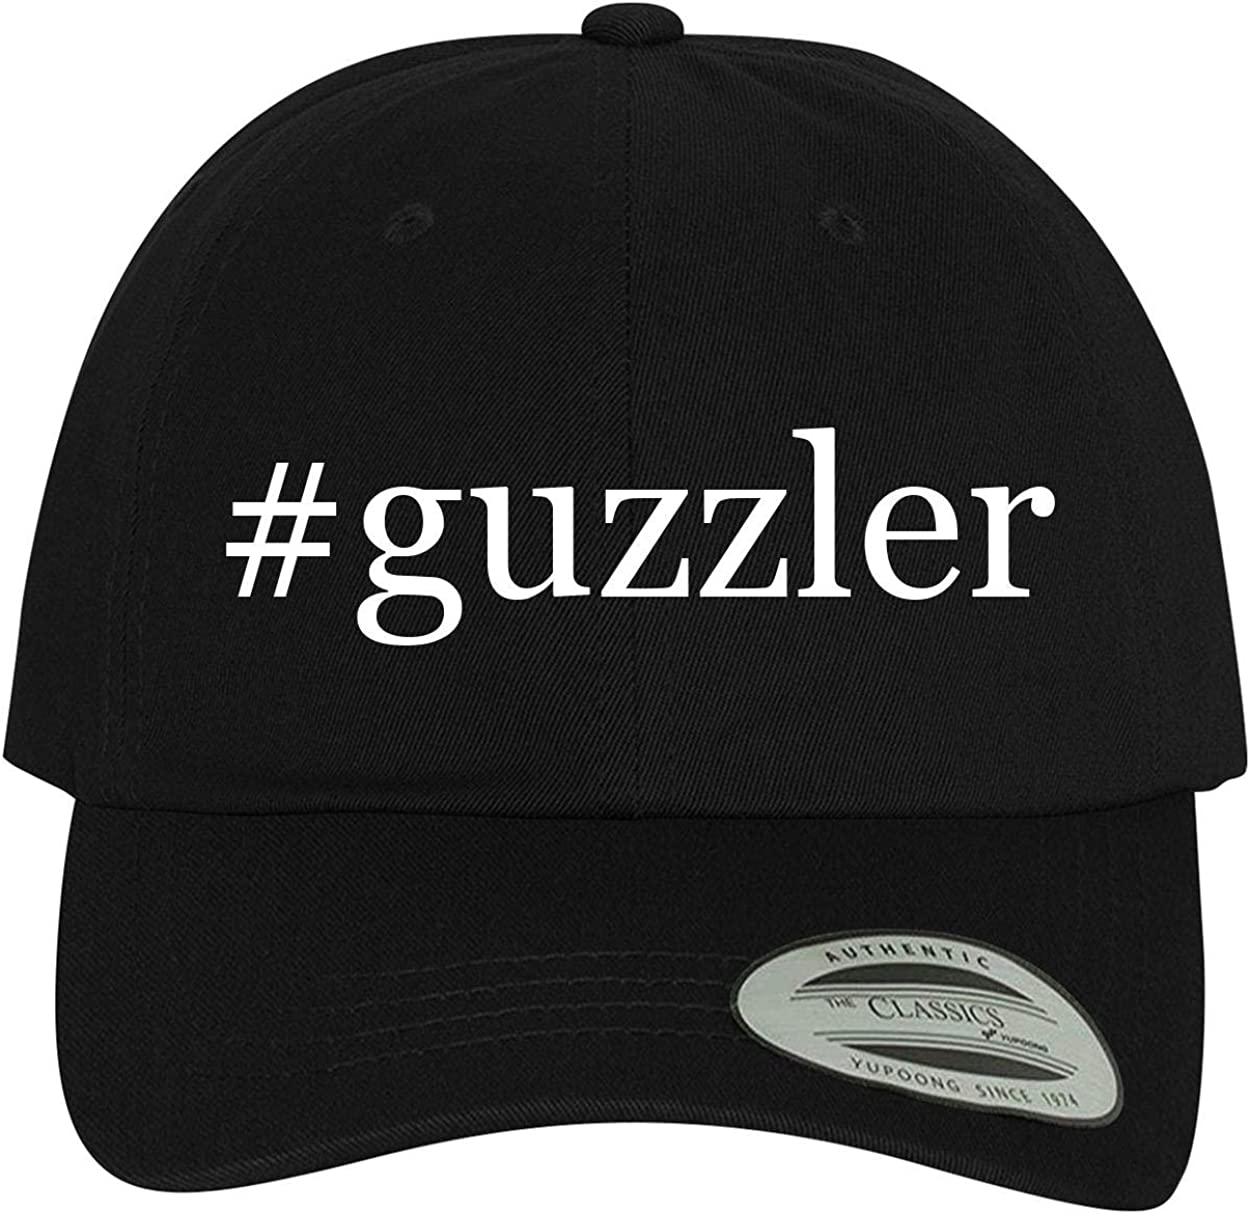 Comfortable Dad Hat Baseball Cap BH Cool Designs #Guzzler